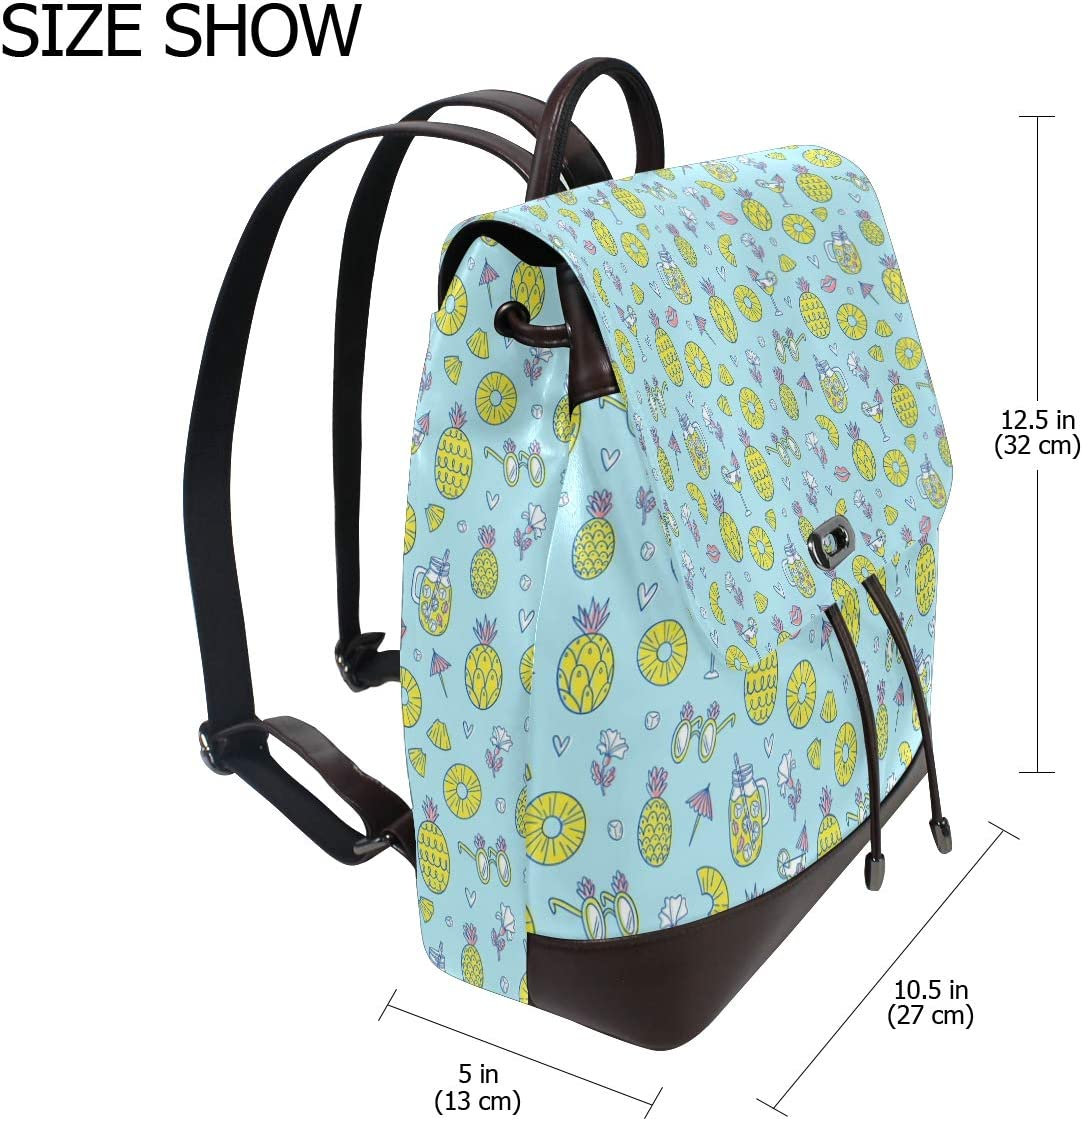 Unisex PU Leather Backpack Pineapple Juice and Lumps Blue Print Womens Casual Daypack Mens Travel Sports Bag Boys College Bookbag